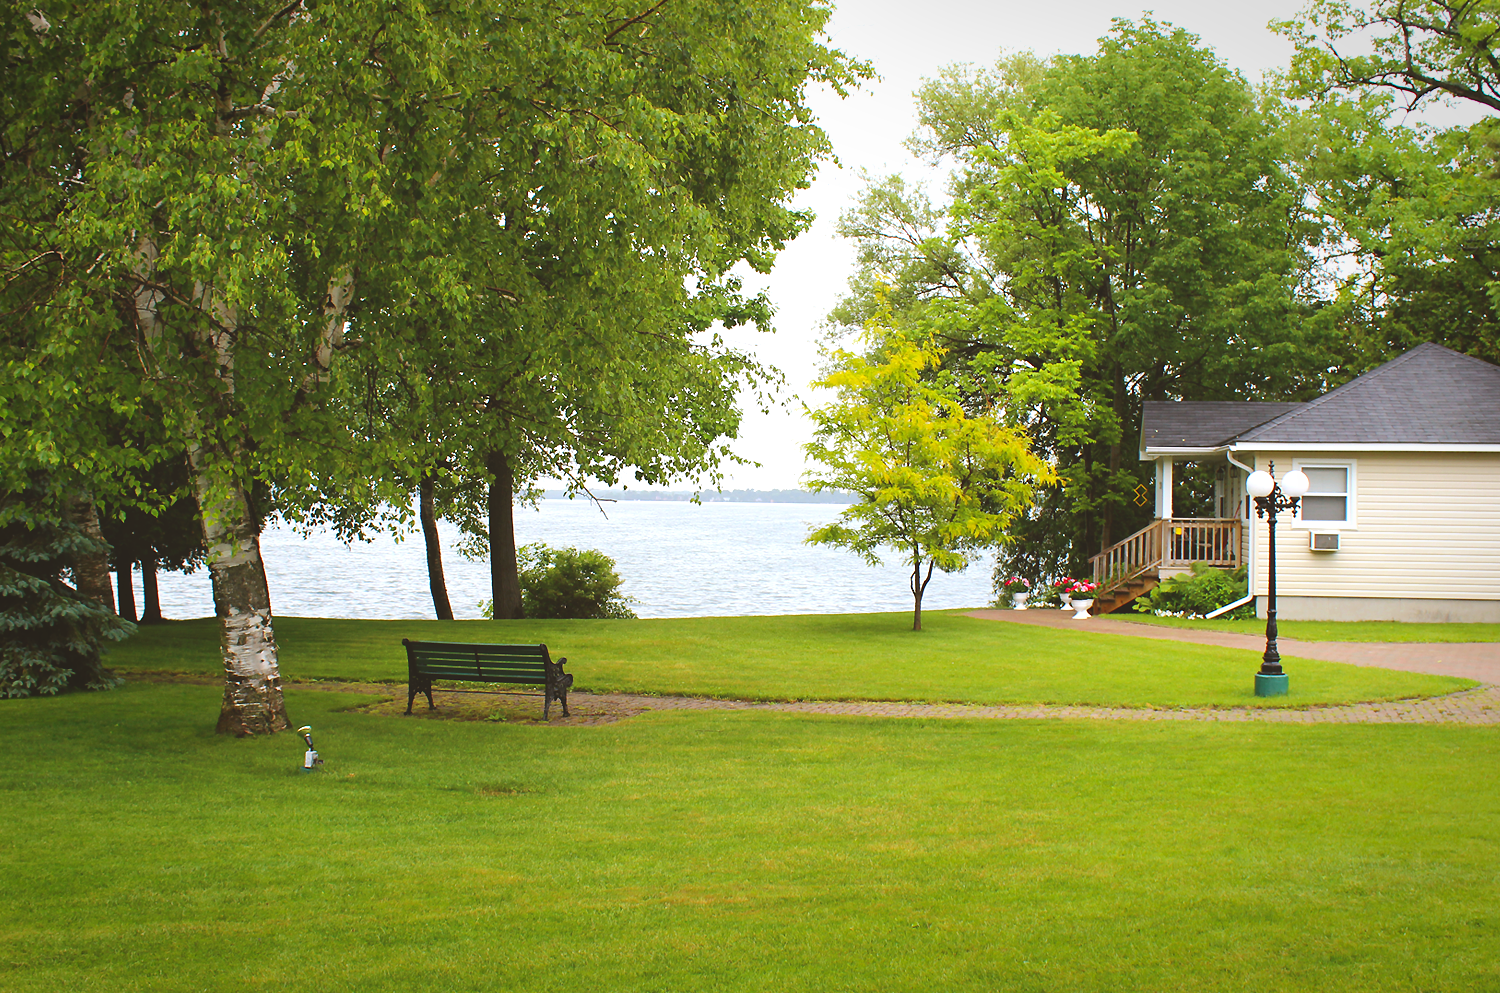 Birchmere Outdoor Waterfront. Click to view larger image.